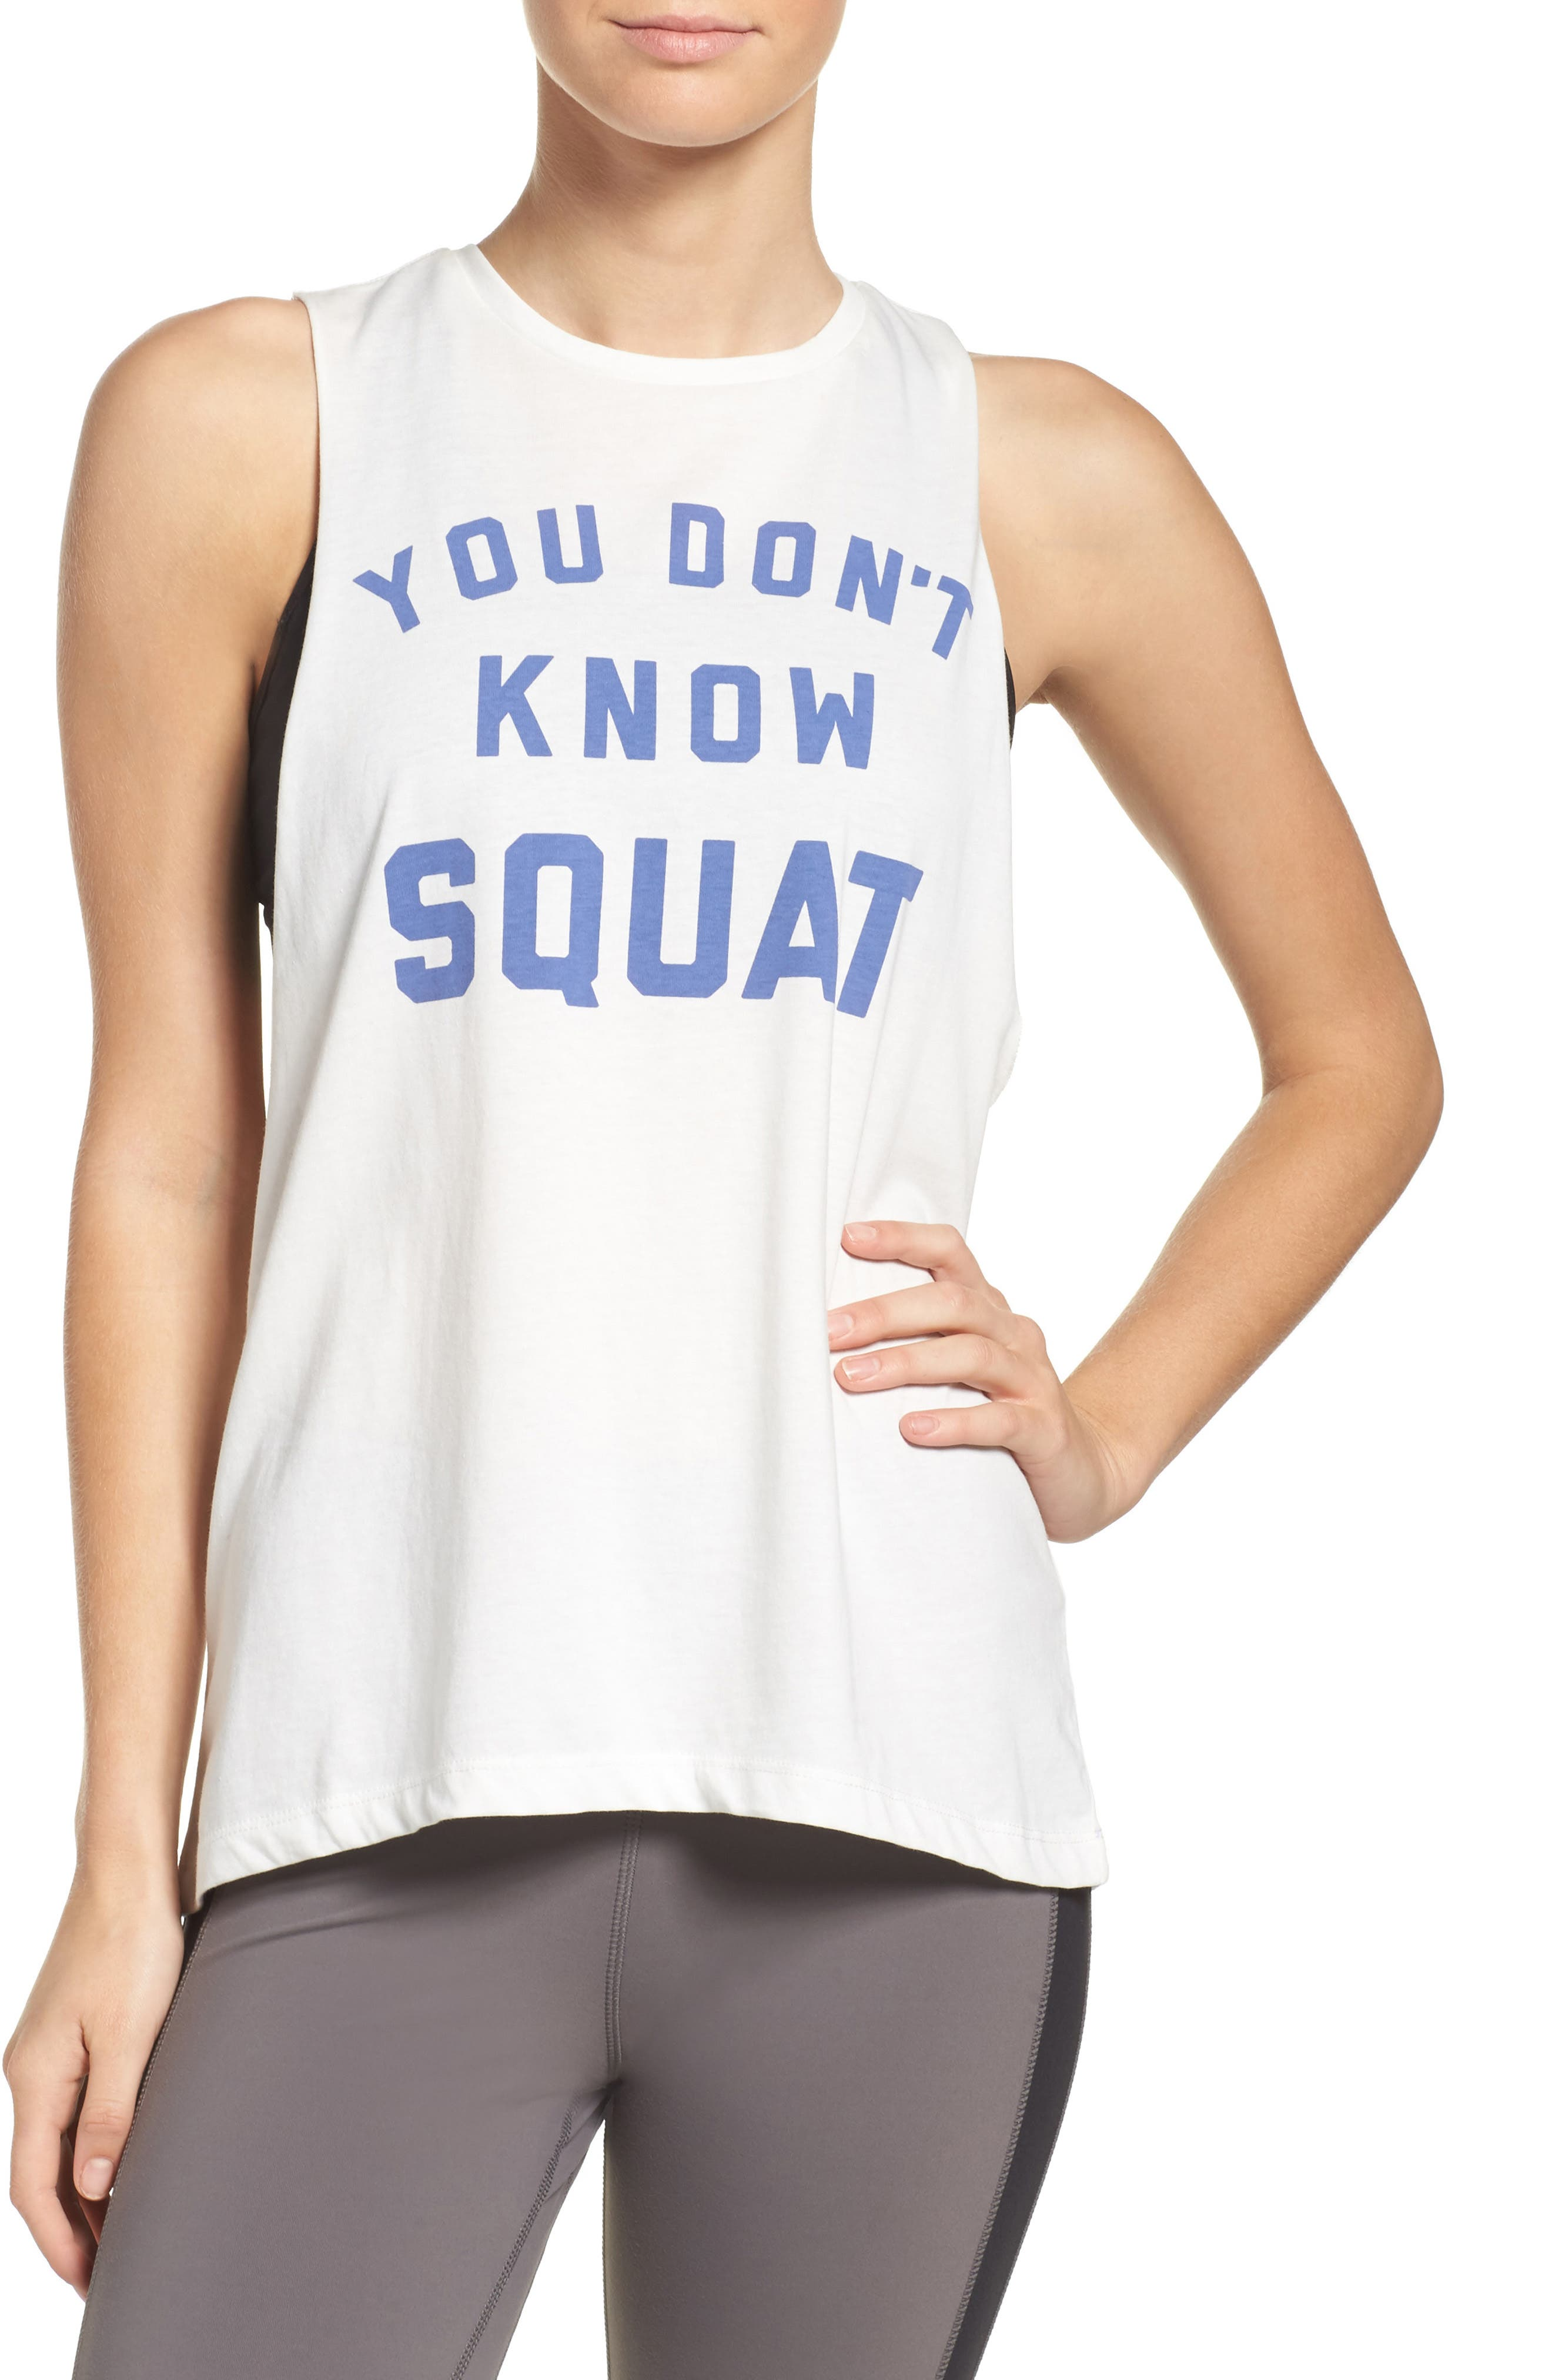 Main Image - Reebok You Don't Know Squat Muscle Tank